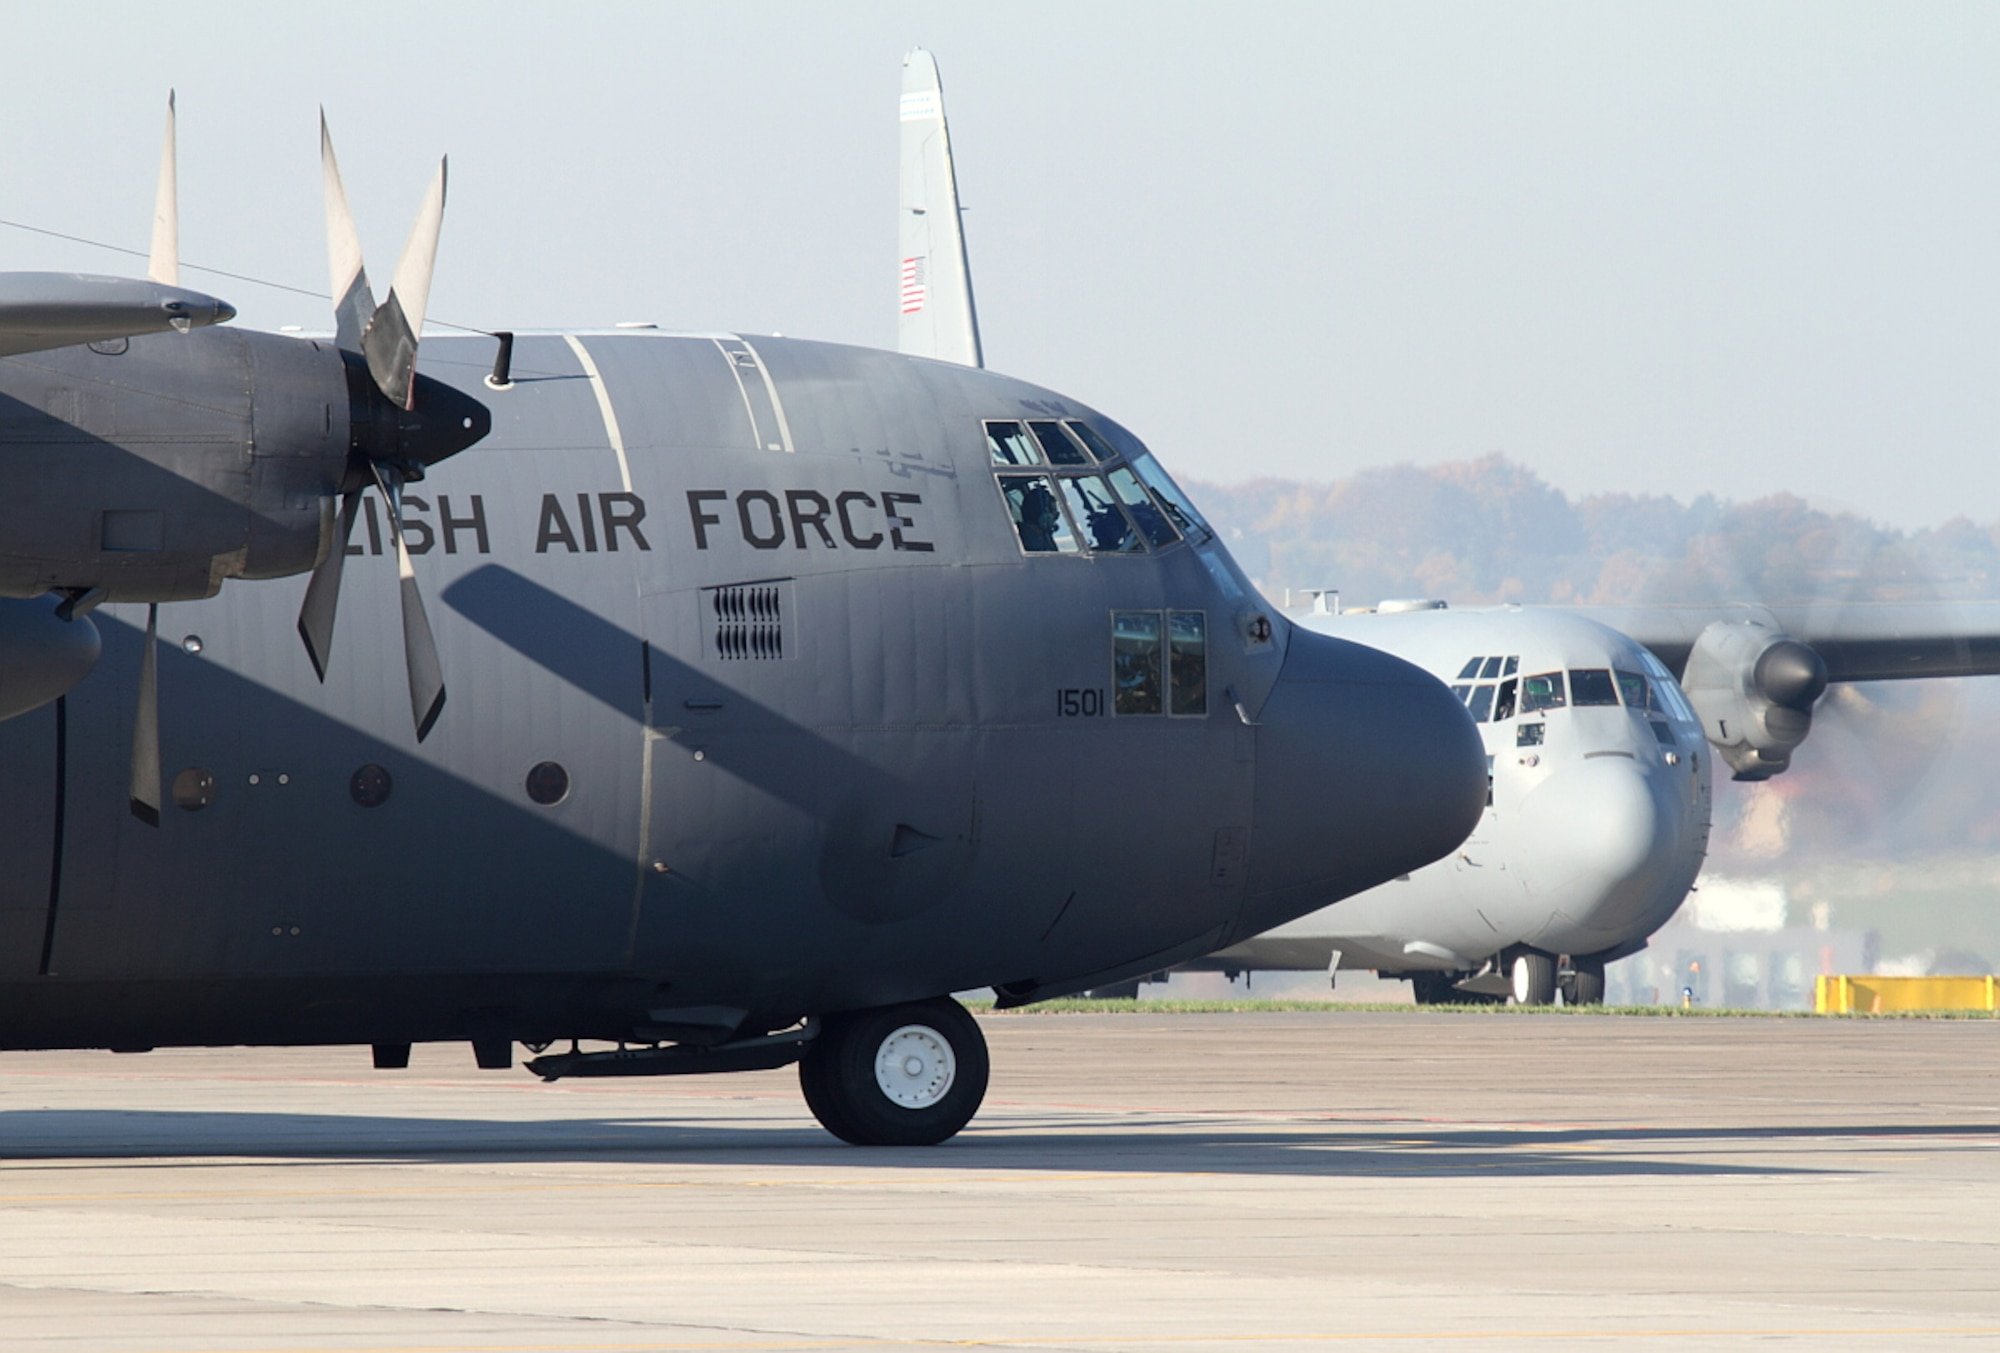 A C-130J Super Hercules prepares for takeoff during the first-ever Joint Precision Air Drop System (JPADS) delivery in the U.S. European Command region during the bilateral theater security cooperation event, Aviation Detachment Rotation Oct. 23, 2013.